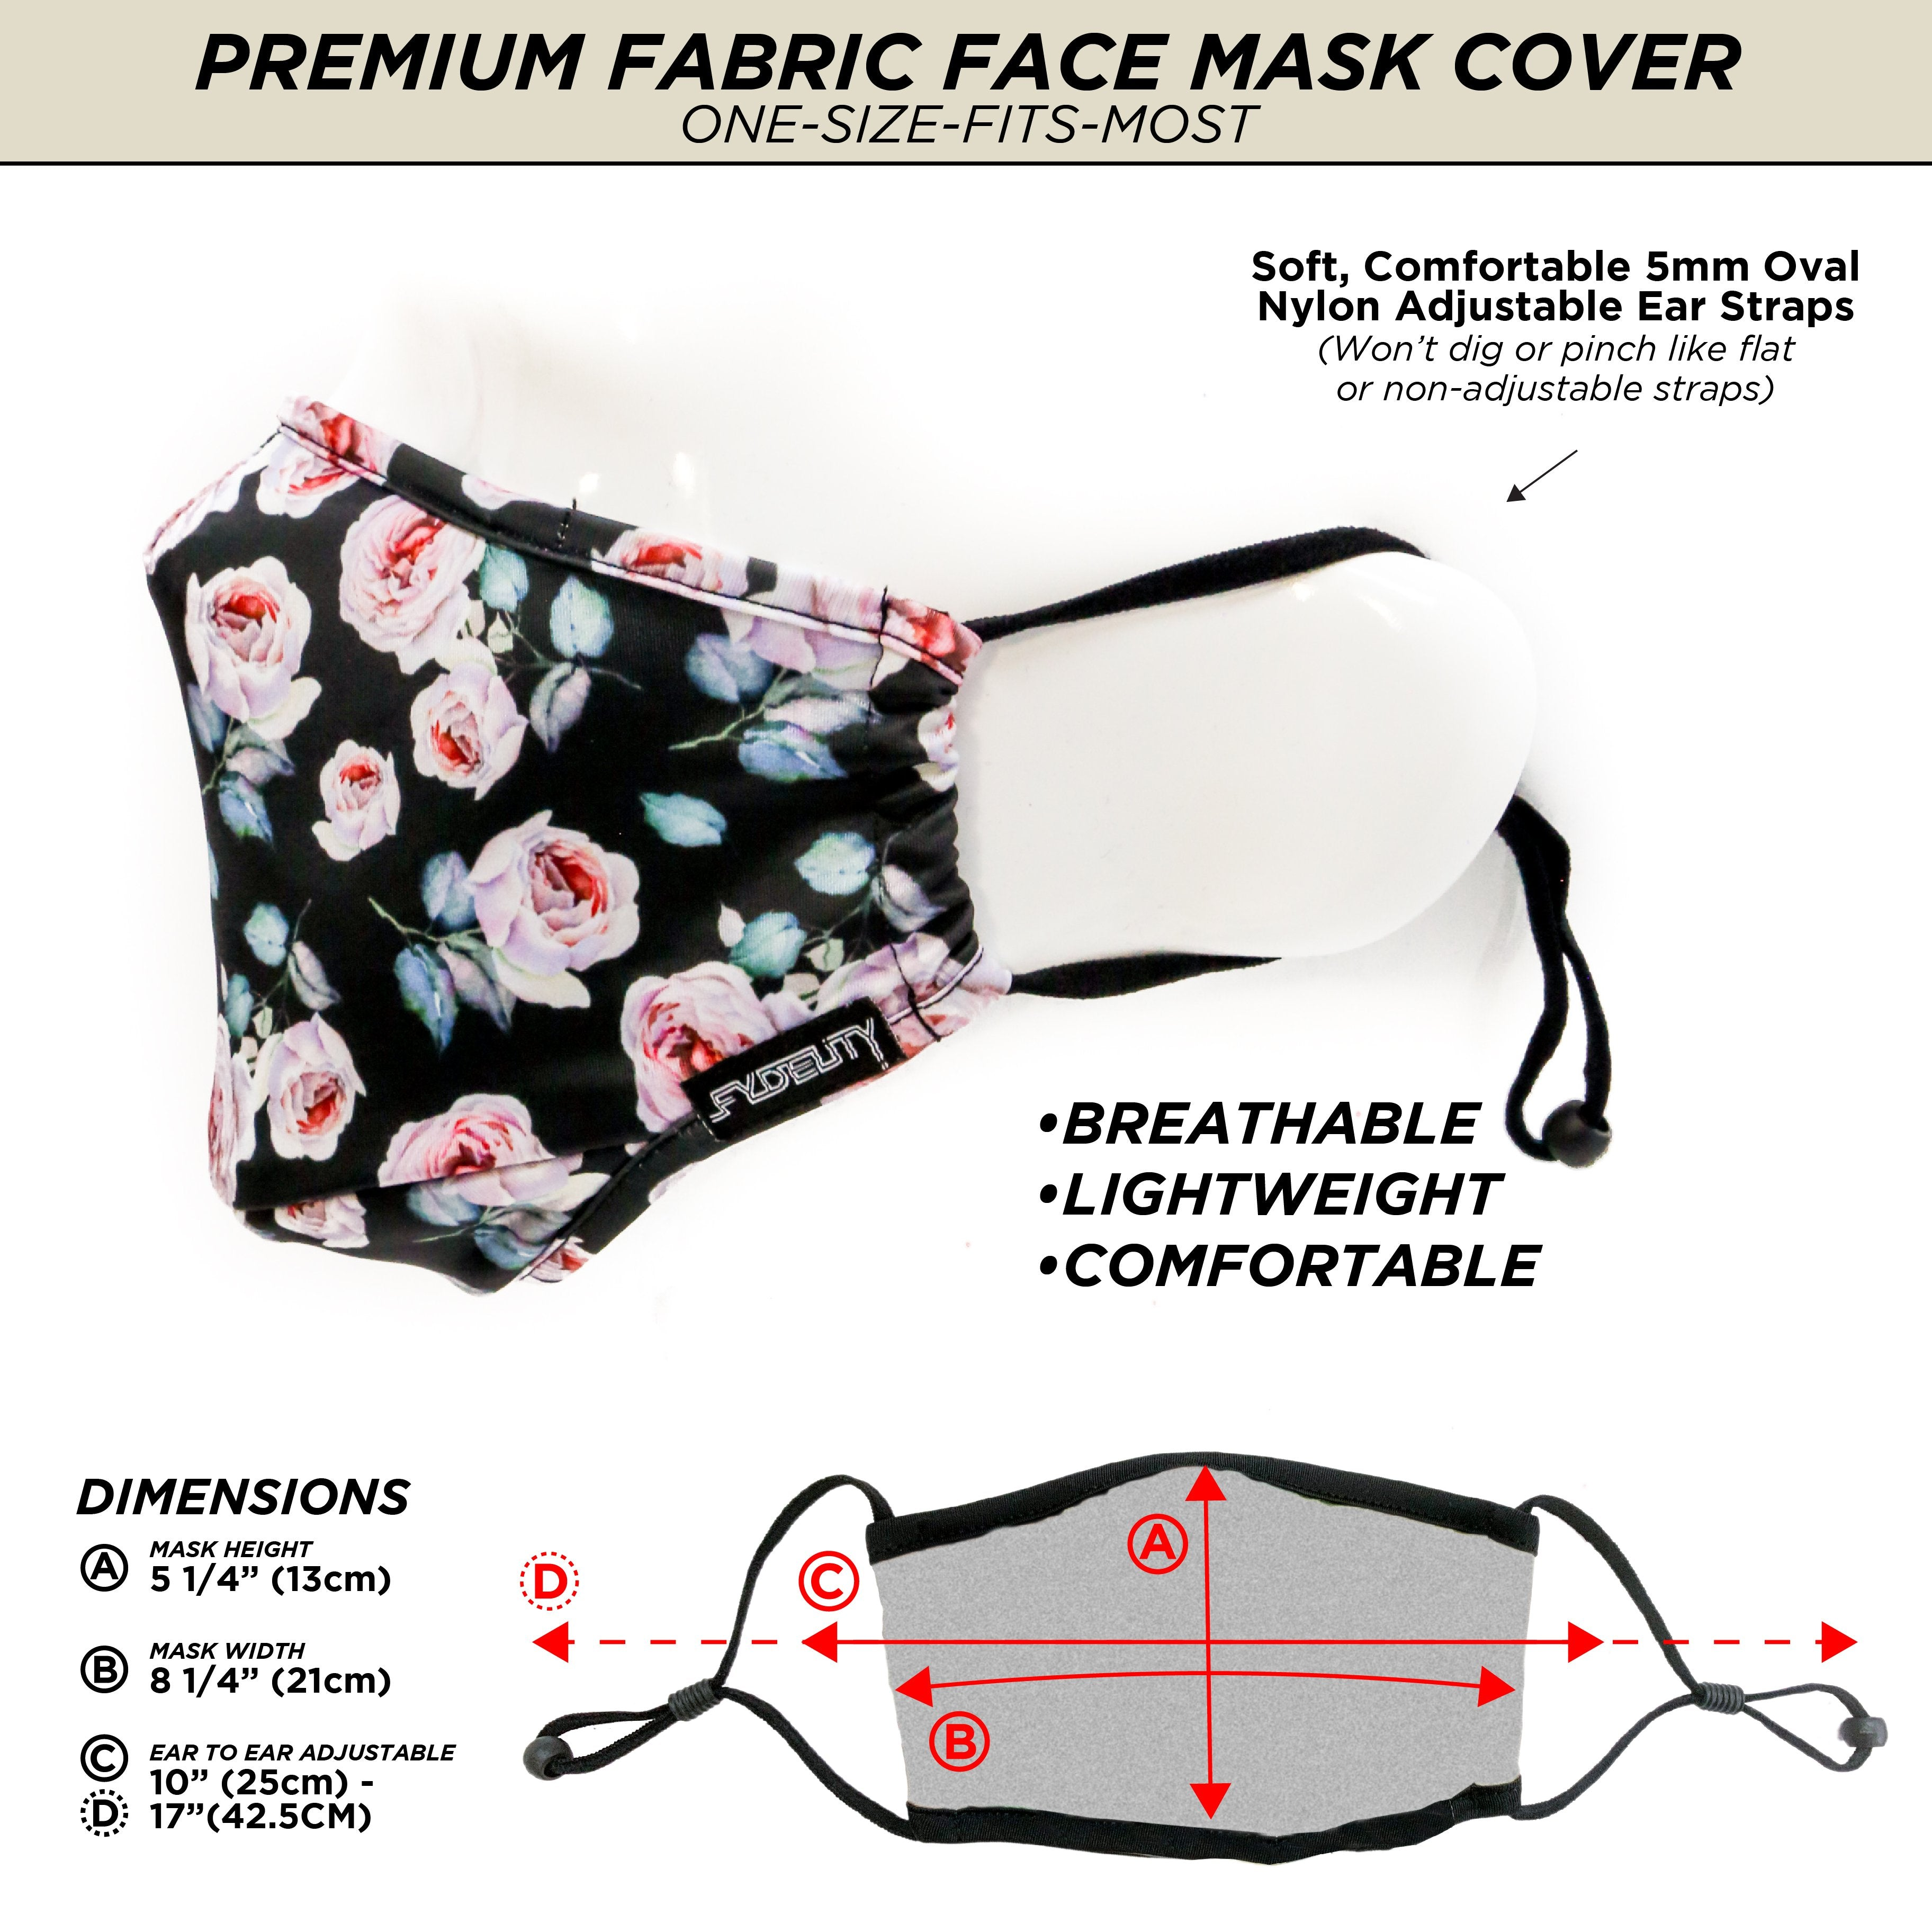 18198: FYDELITY- Premium Protective Fabric Face Cover- Pink Rose